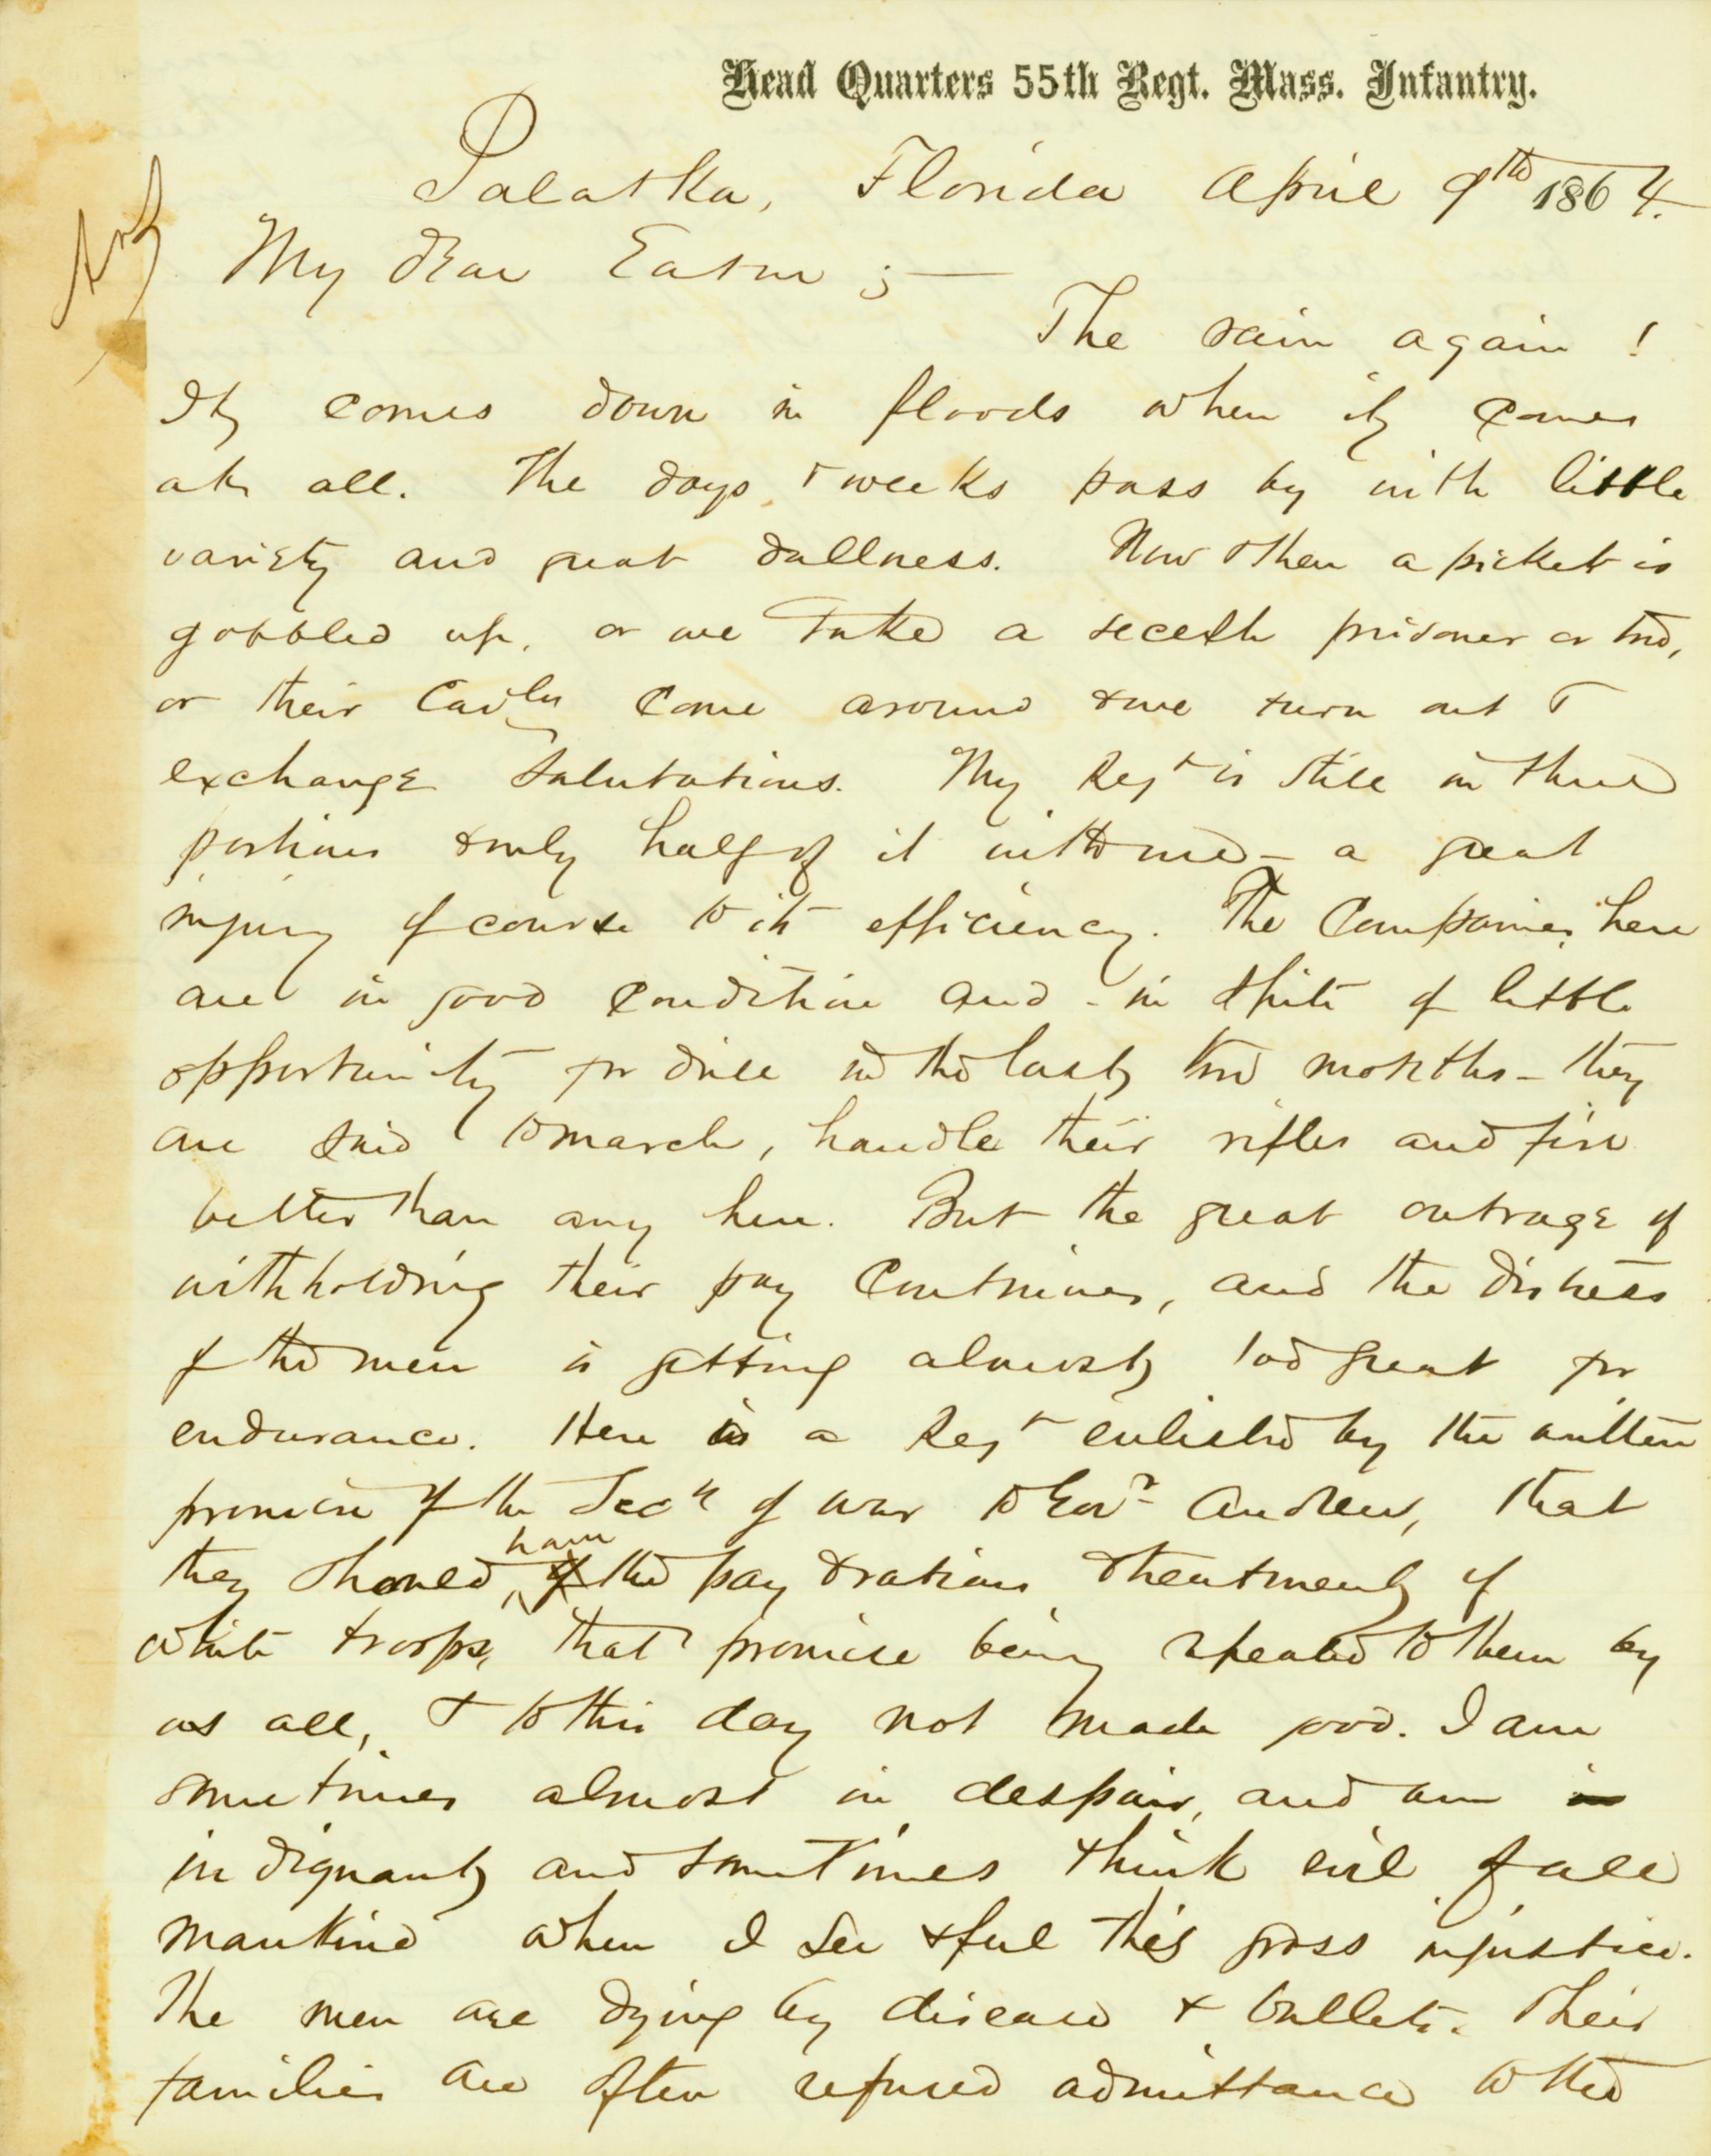 the first page of a letter written by alfred s hartwell in 1864